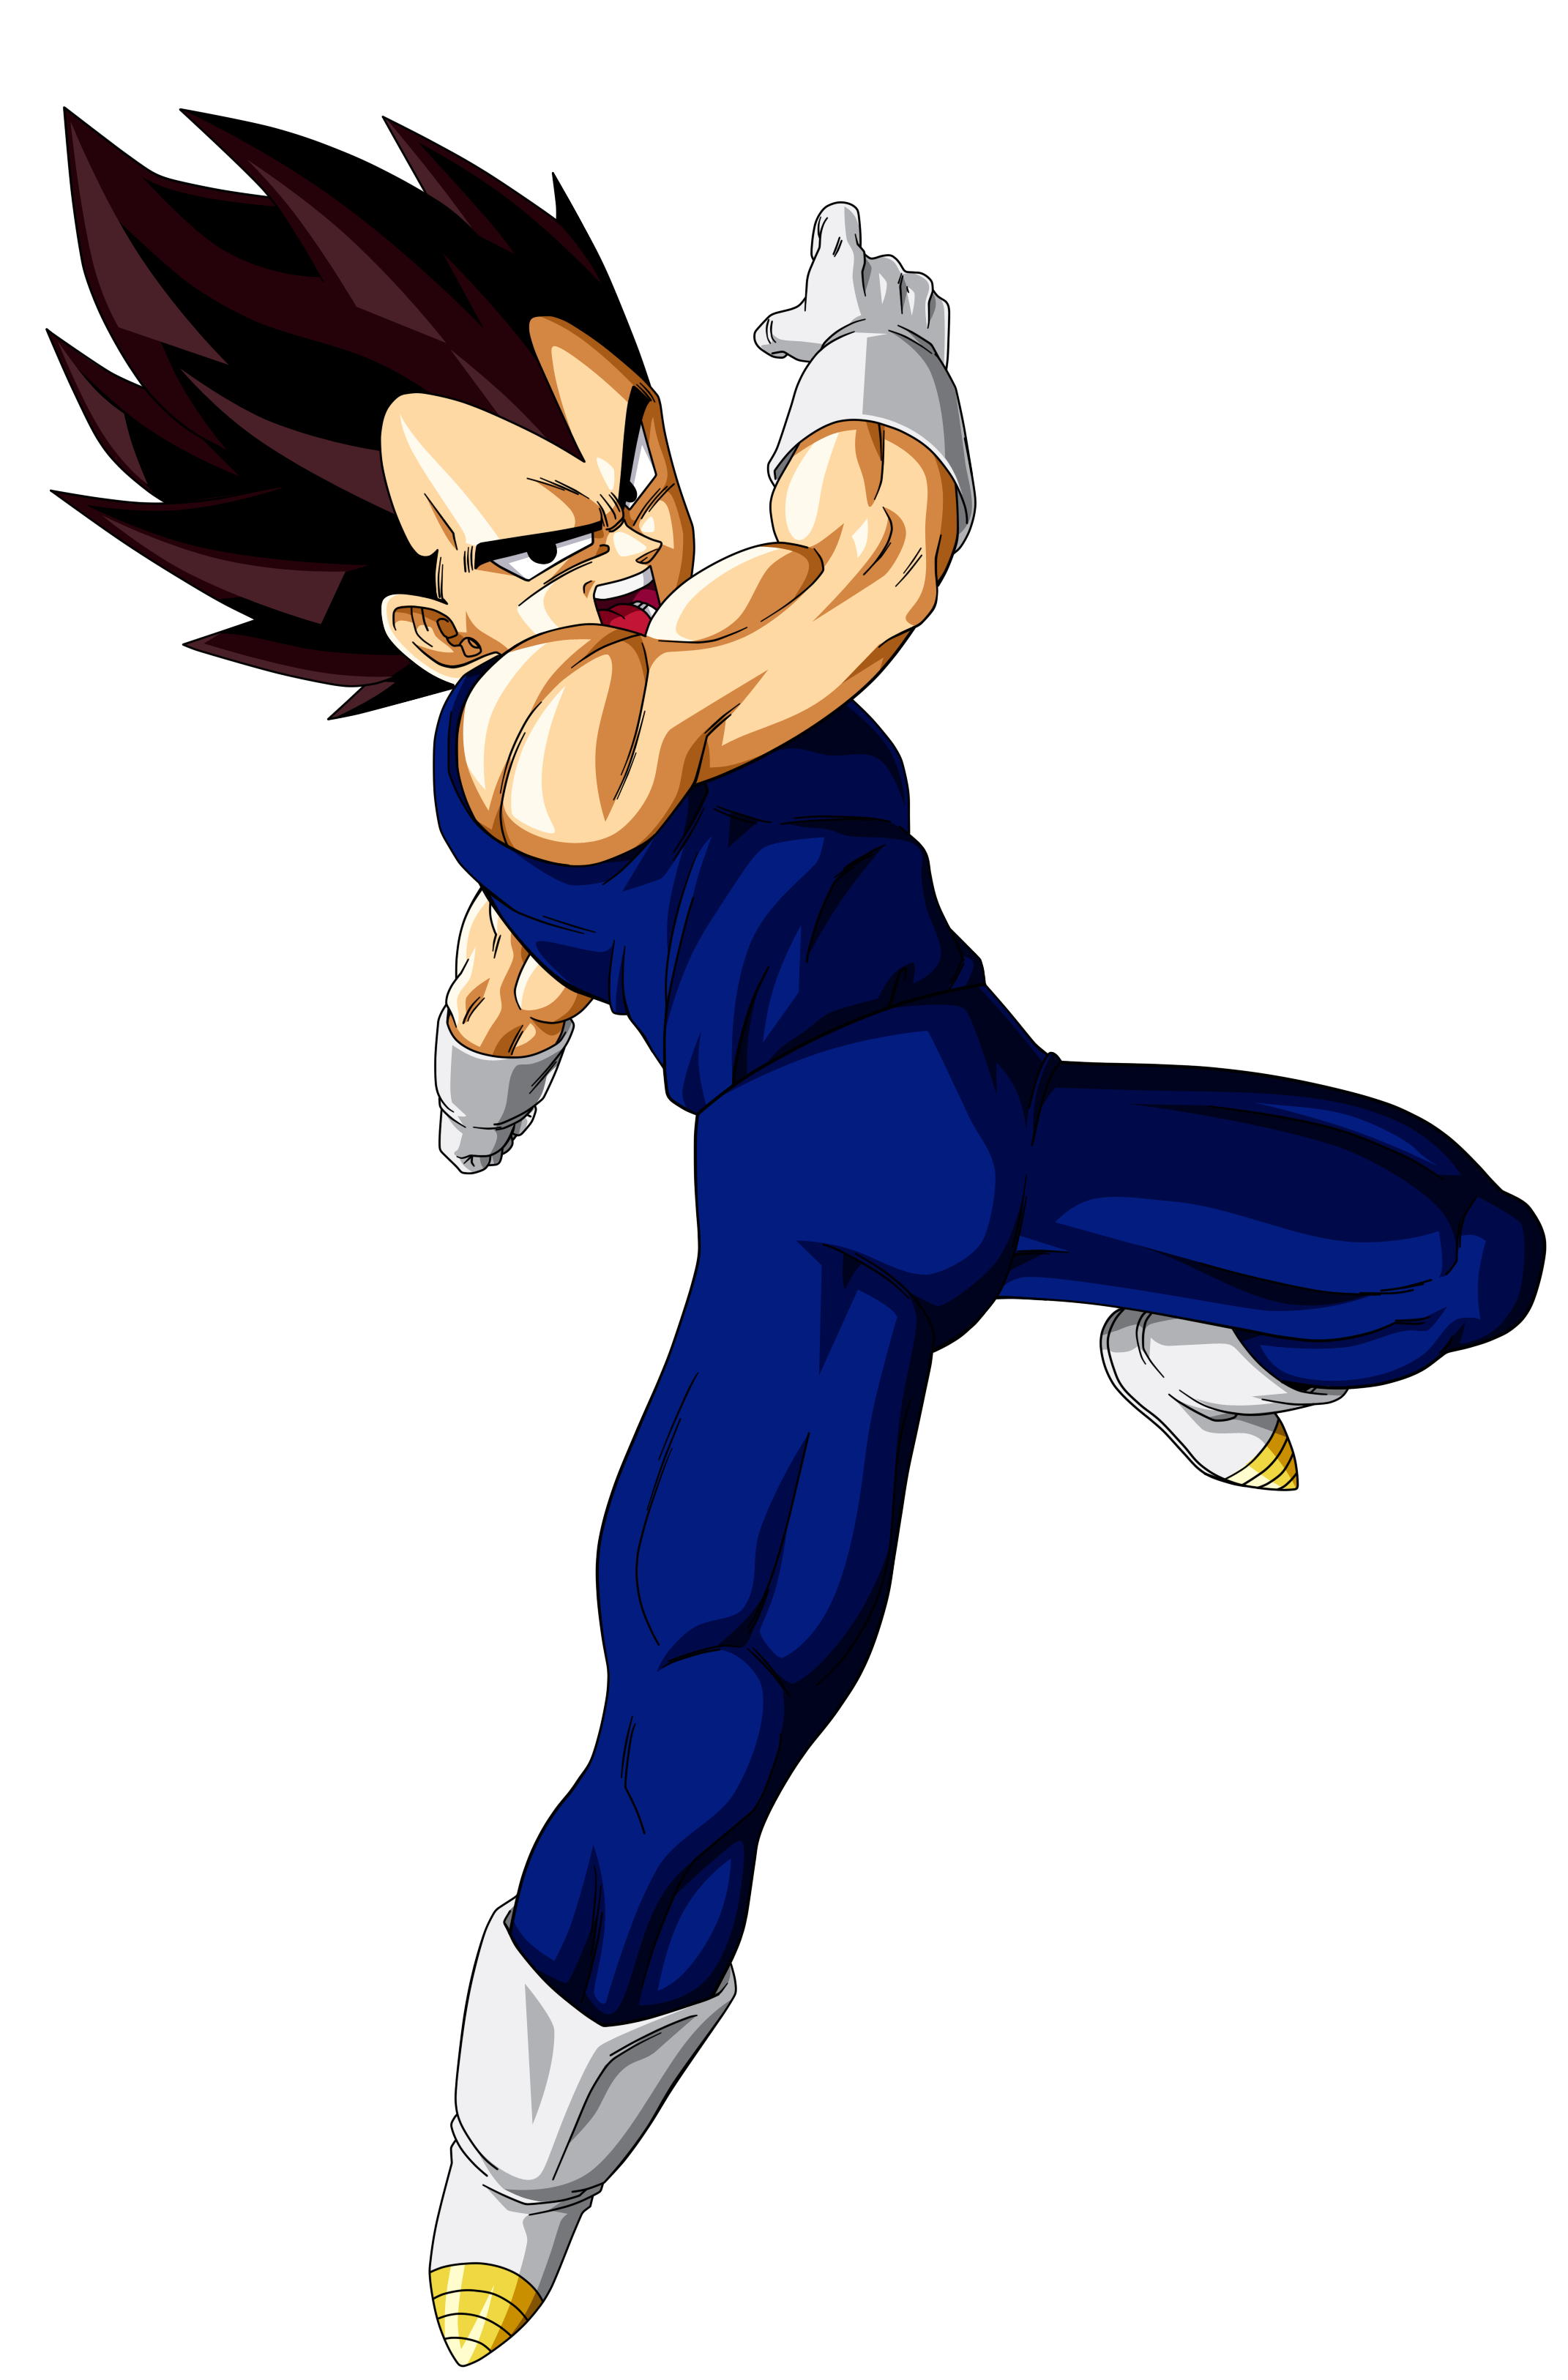 Dragon ball z vegeta png. Pixels pinterest vegetapng